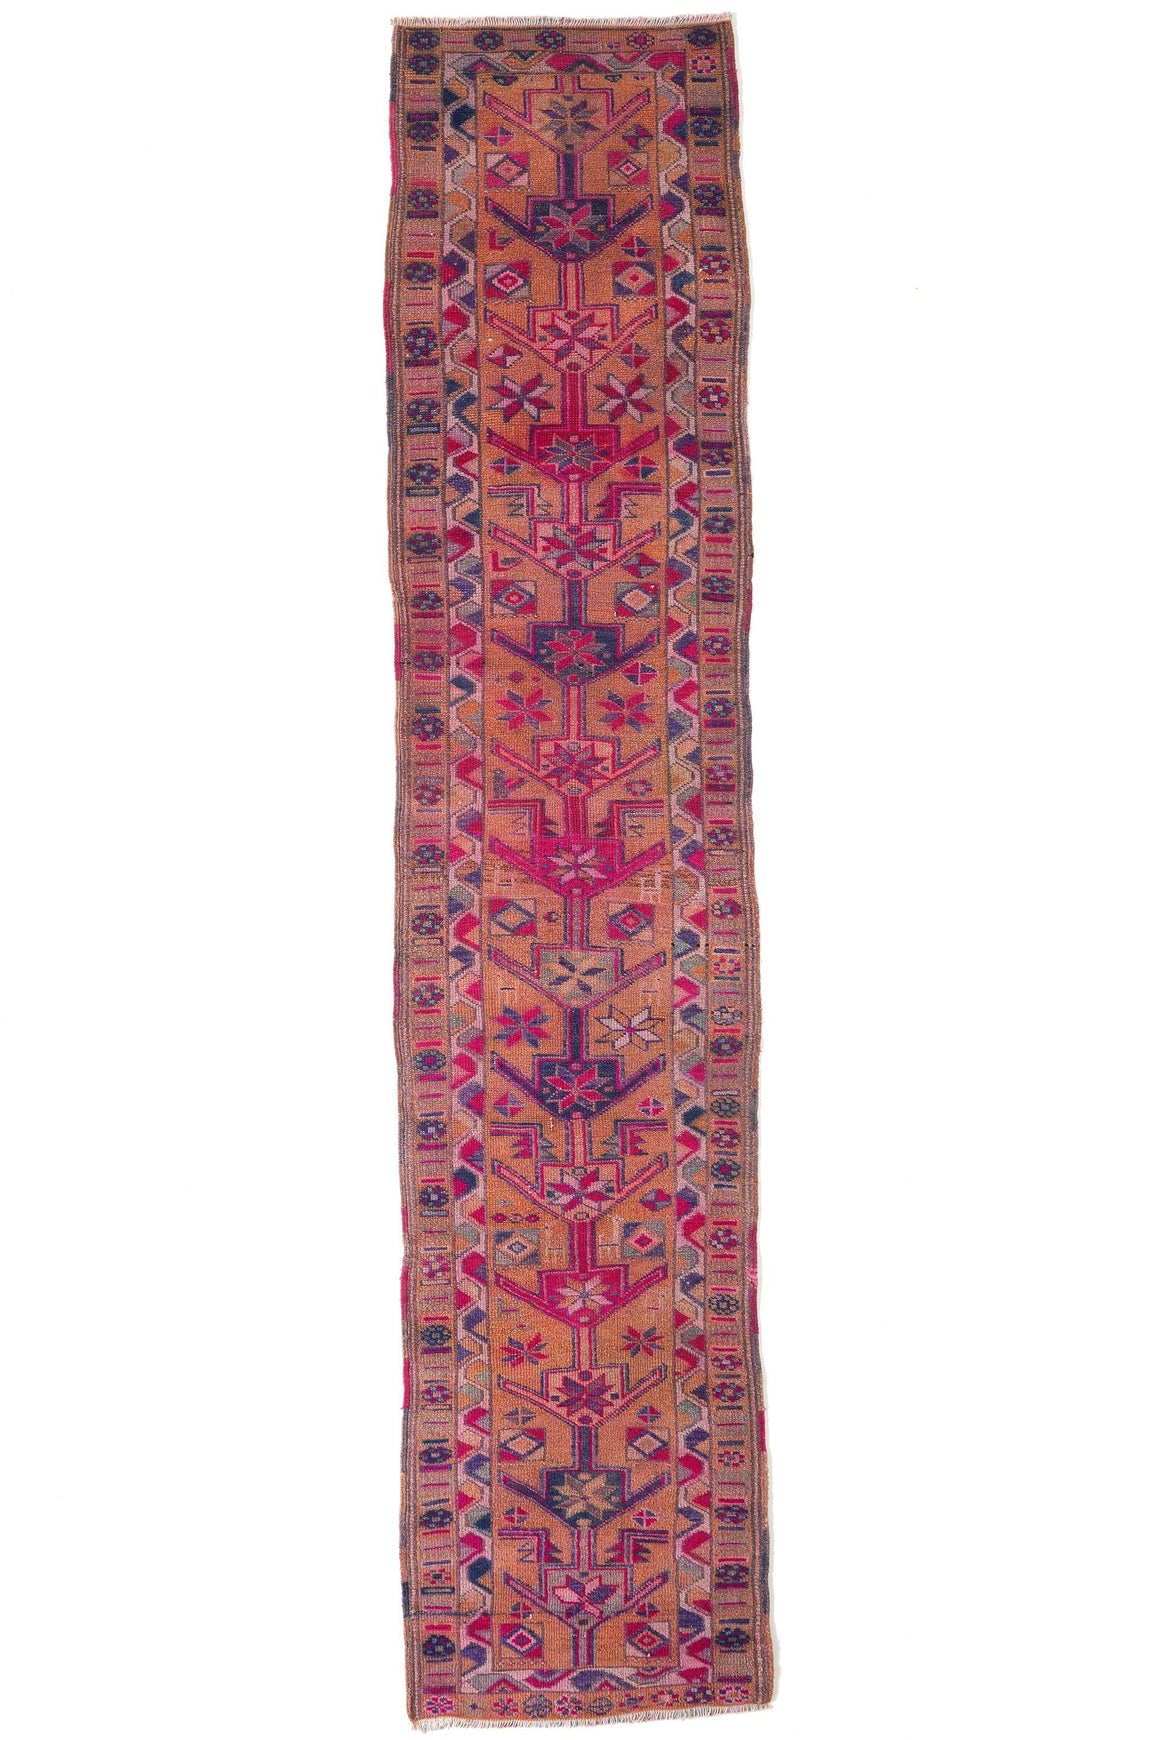 'Rosé' Vintage Turkish Runner - 2'8'' x 12'8'' - Canary Lane - Curated Textiles